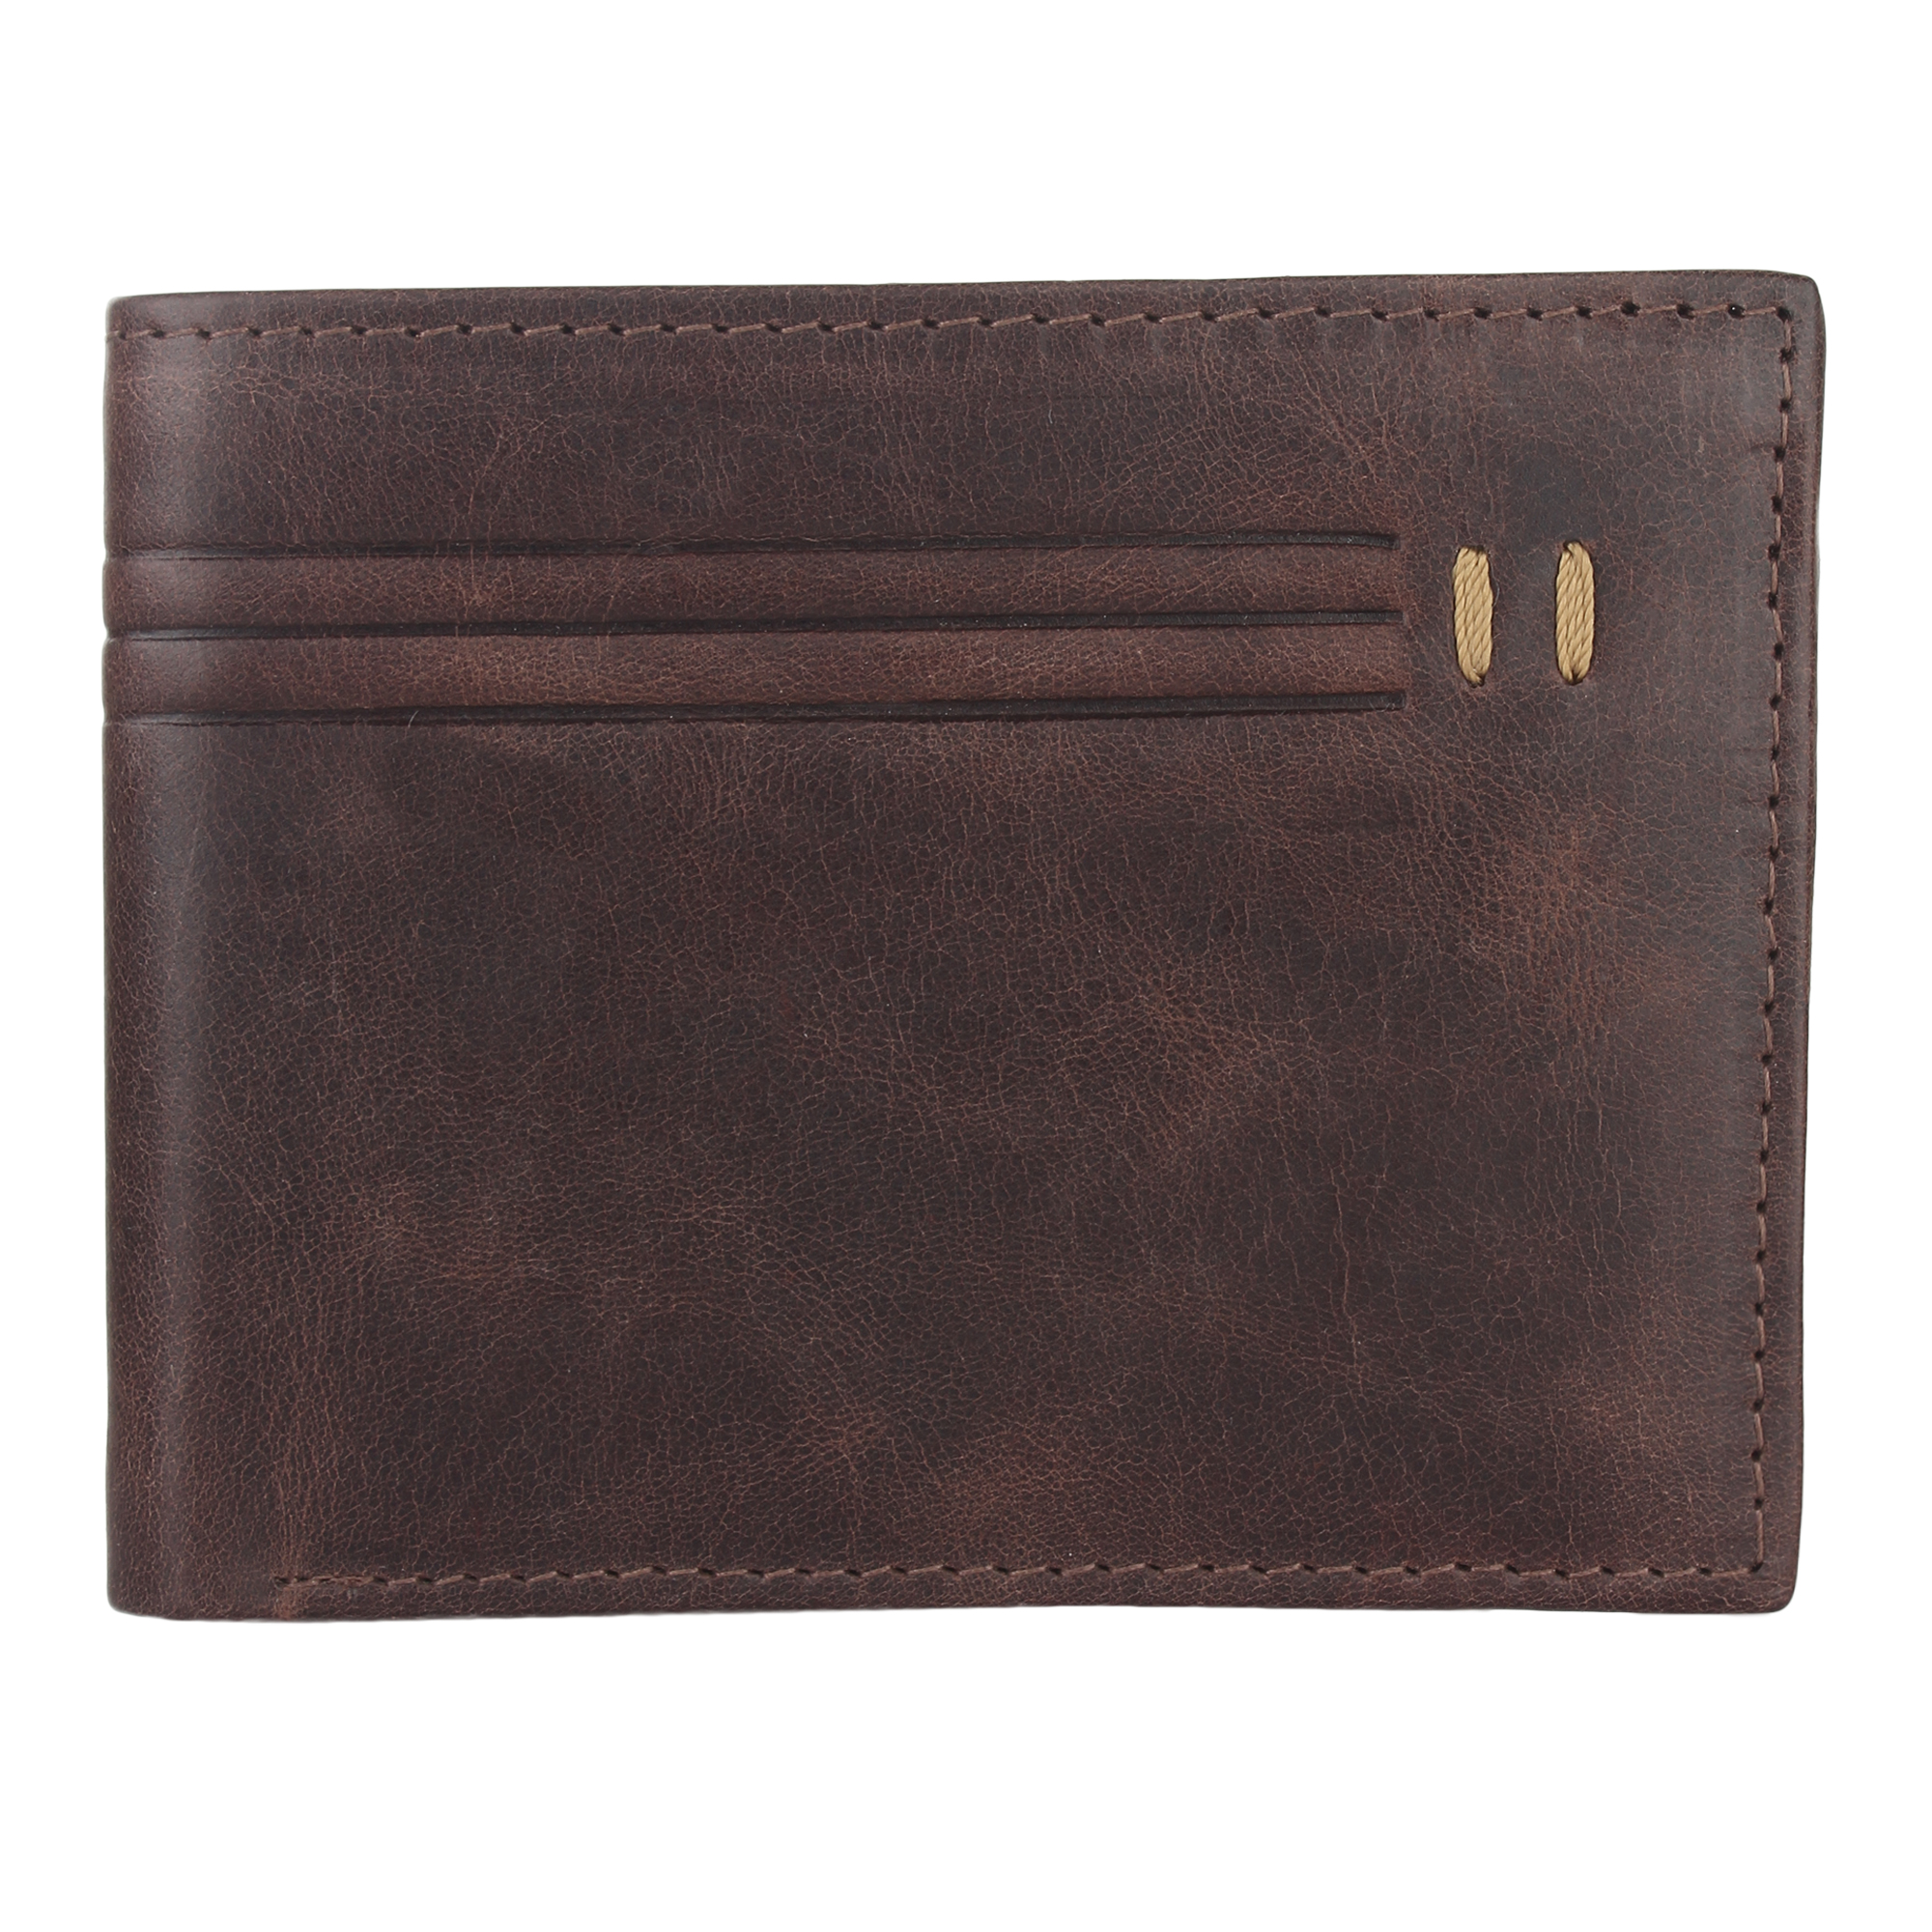 Leather Wallets Manufacturers in Poland, Leather Wallets Suppliers in Poland, Leather Wallets Wholesalers in Poland, Leather Wallets Traders in Poland, custom leather wallet manufacturers in Poland, Leathe